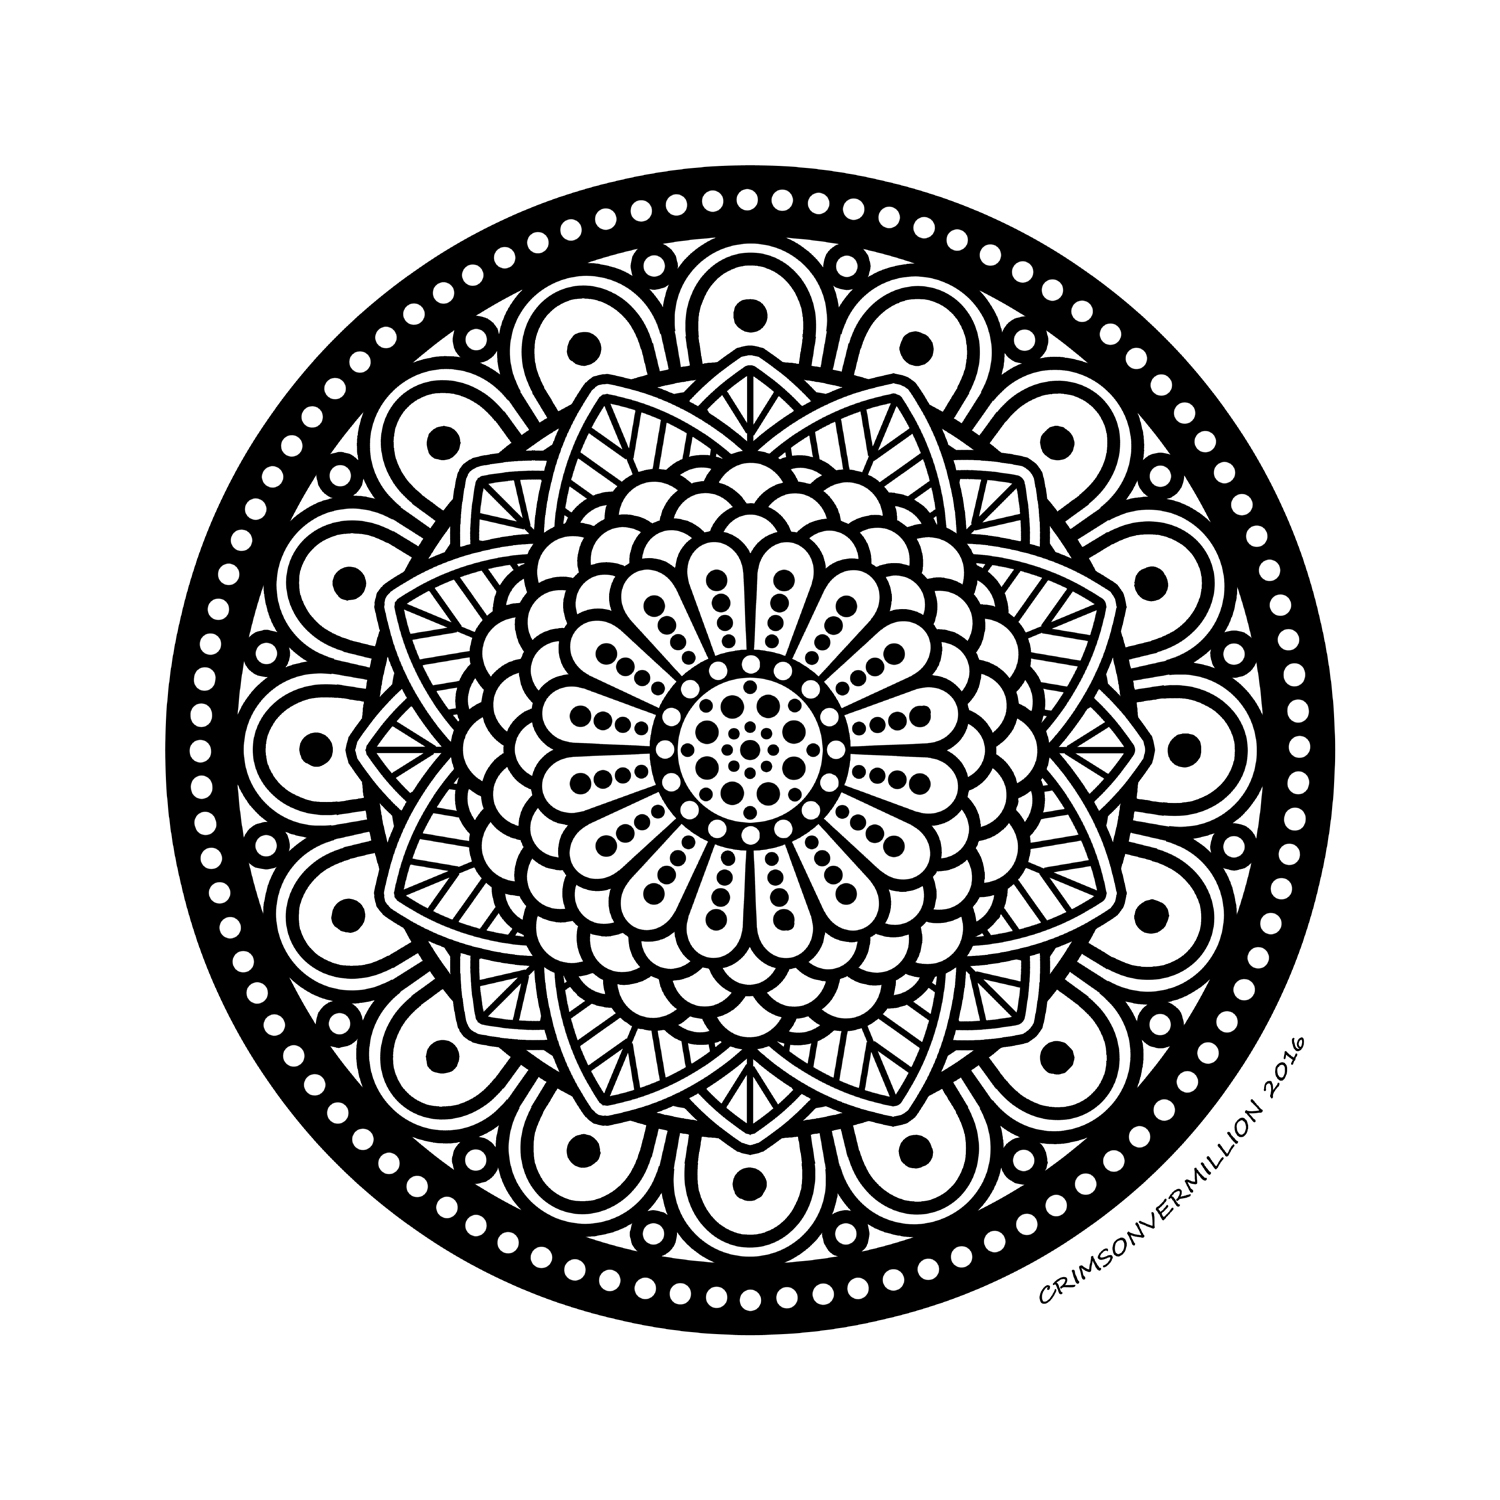 The echo of those spheres resounds in the heart of this mandala.